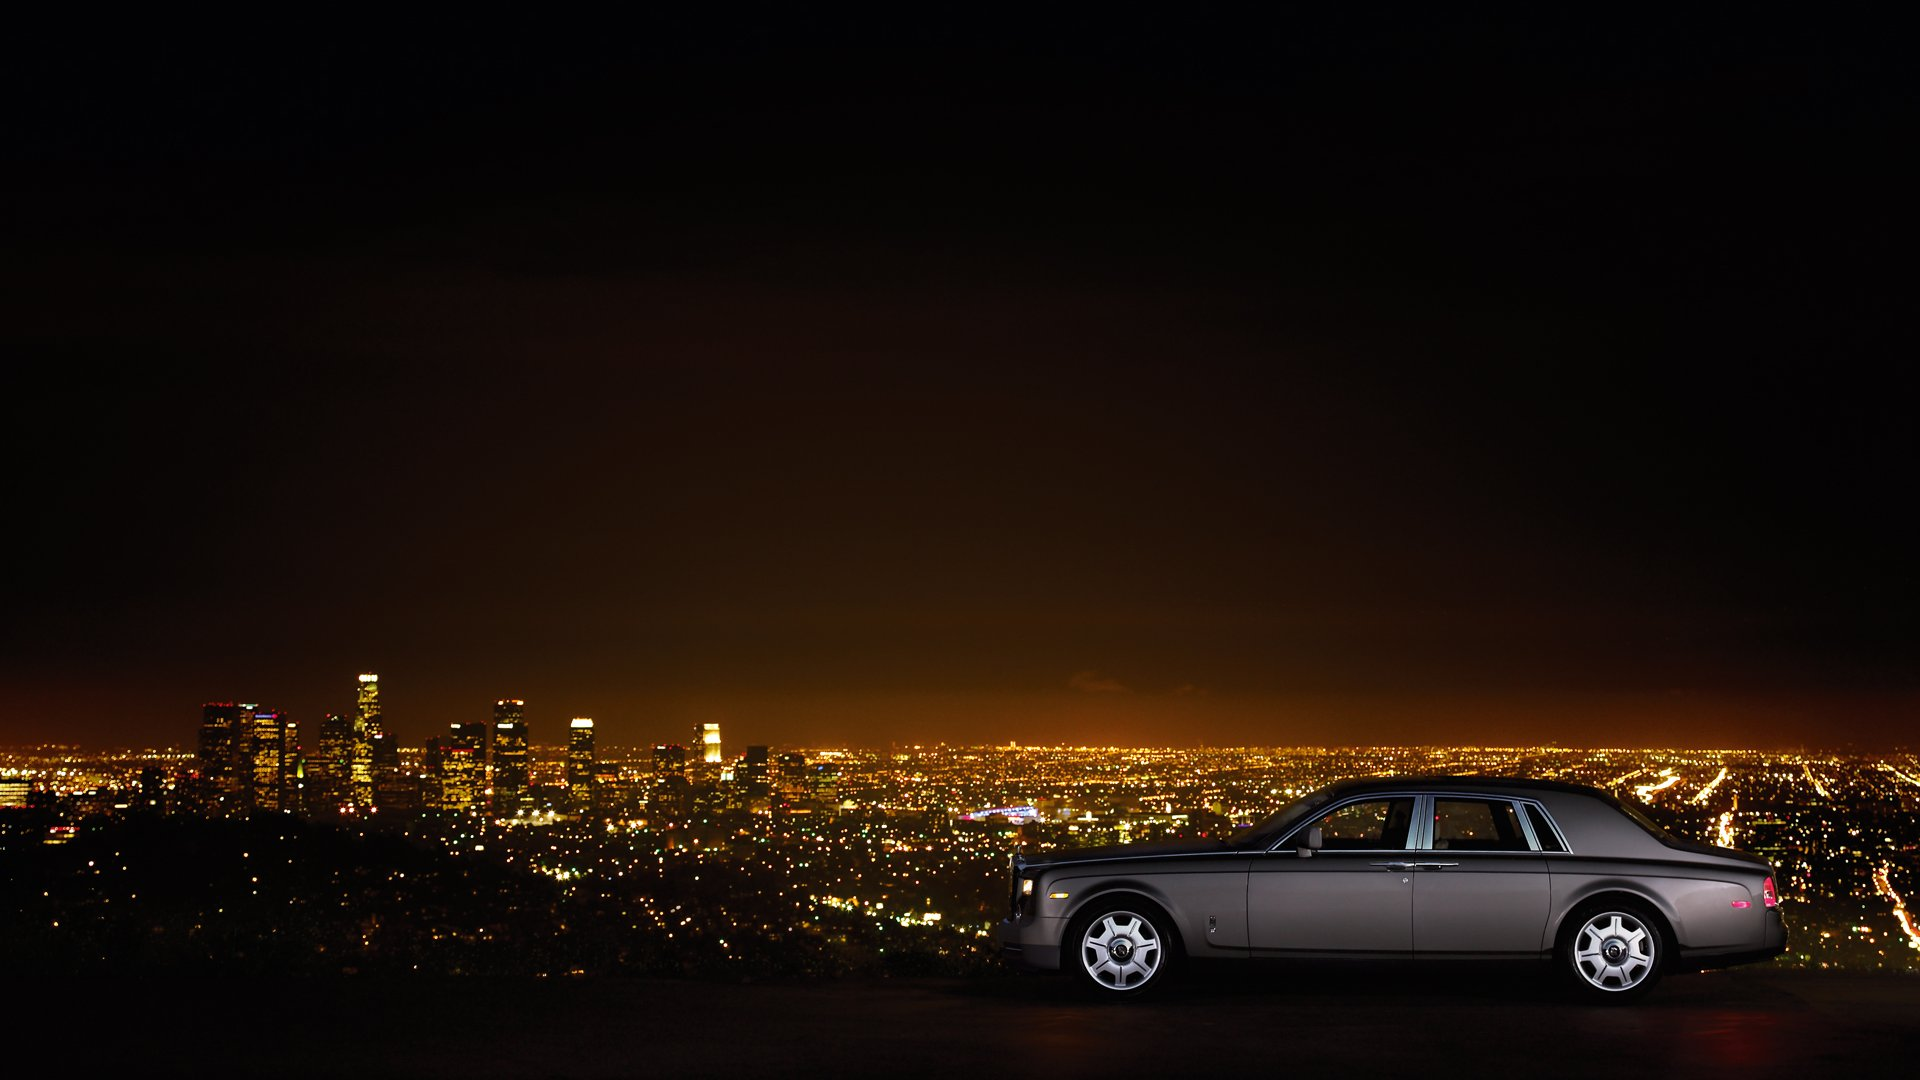 Background Car Hd Wallpapers Cities: Rolls-Royce Full HD Wallpaper And Background Image